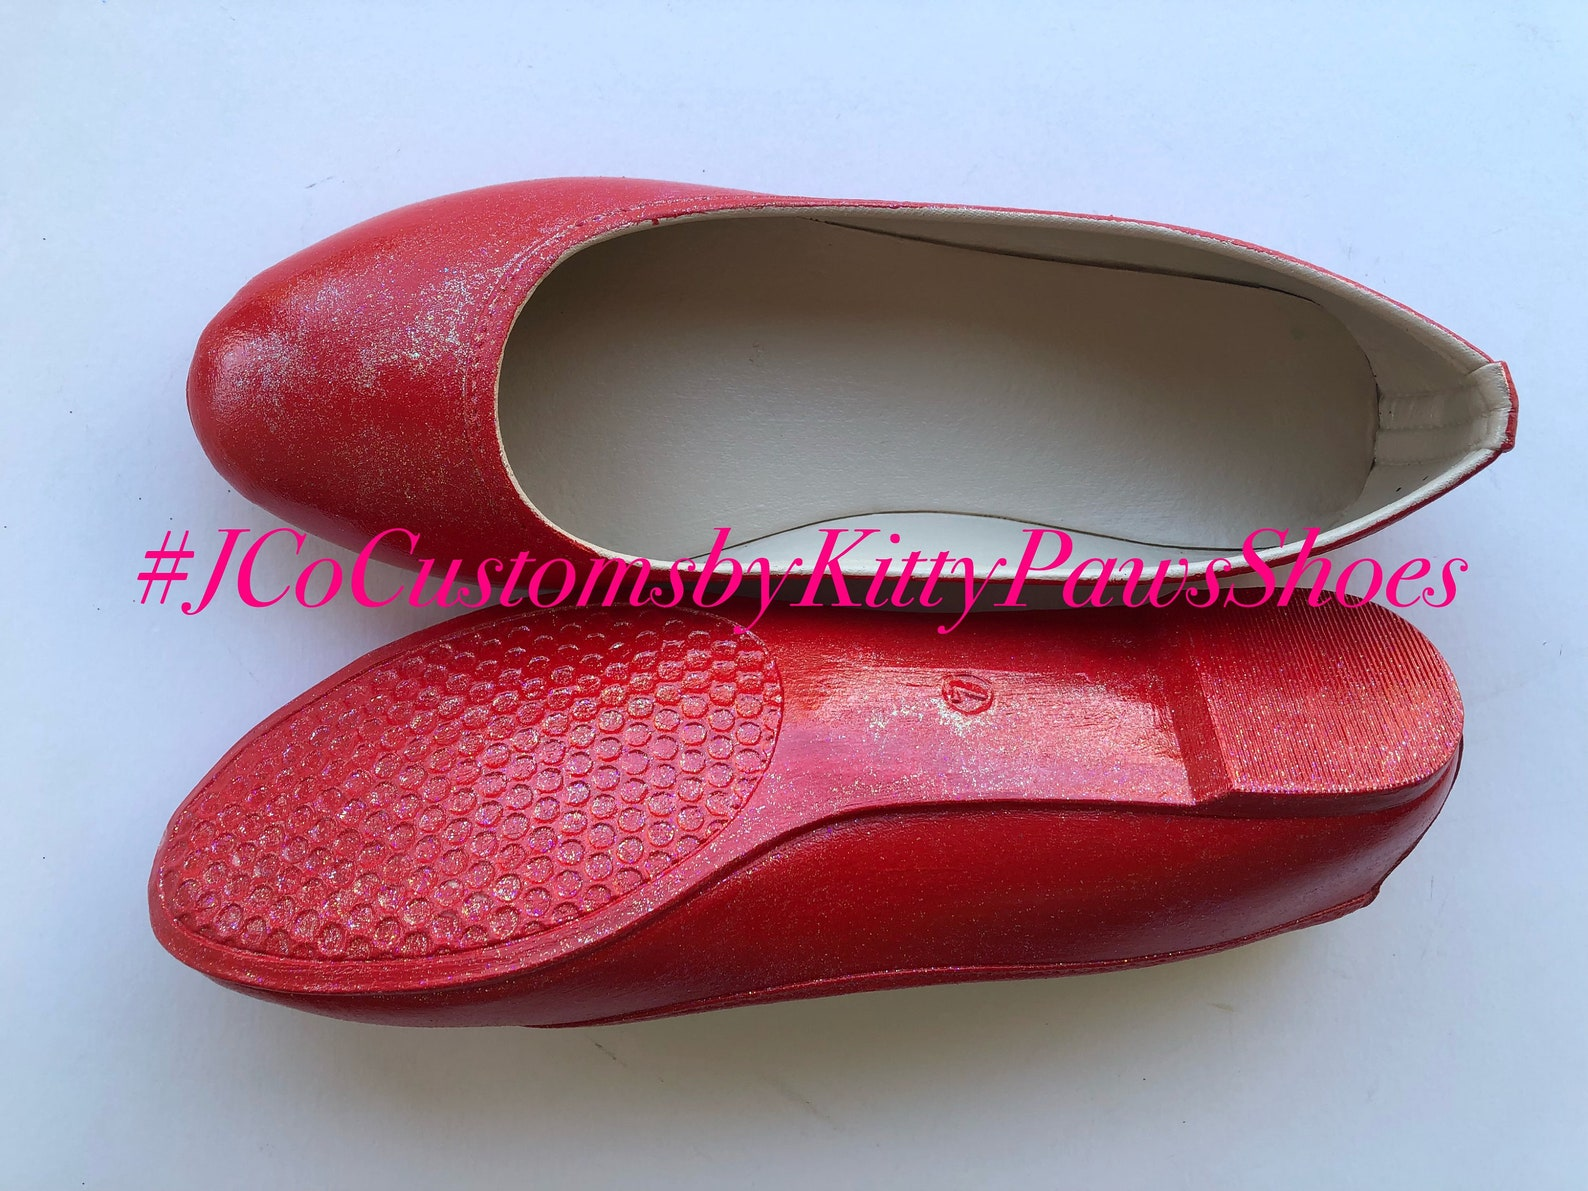 red flats women's custom ruby red shimmery bridal ballet flats *free u.s. shipping* jco.customs by kitty paws shoes